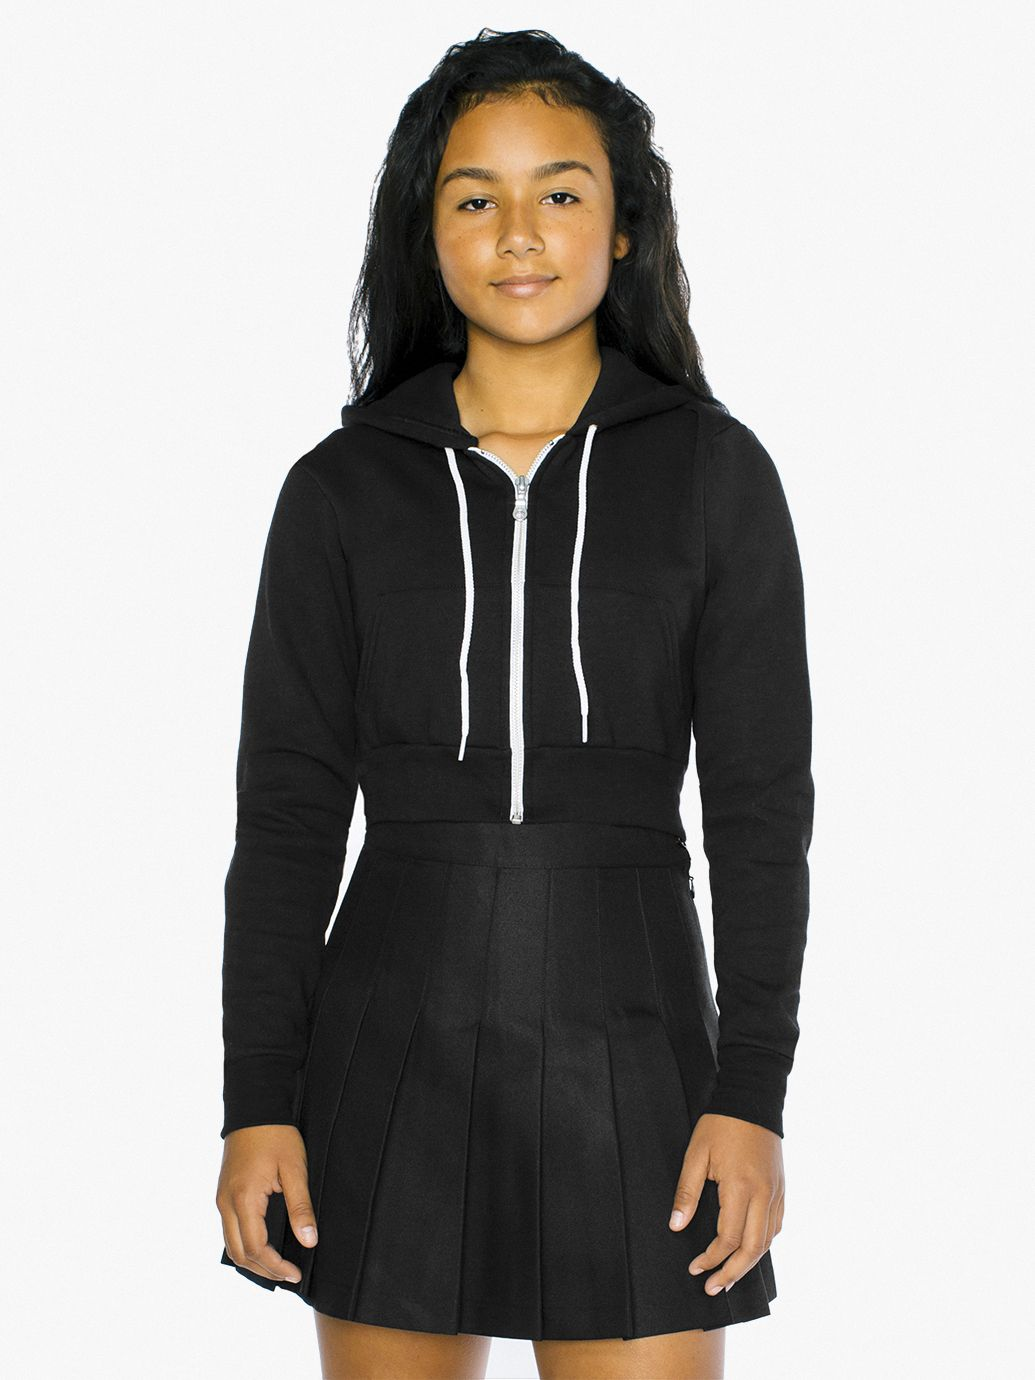 Kids' Flex Fleece Cropped Zip Hoodie by American Apparel